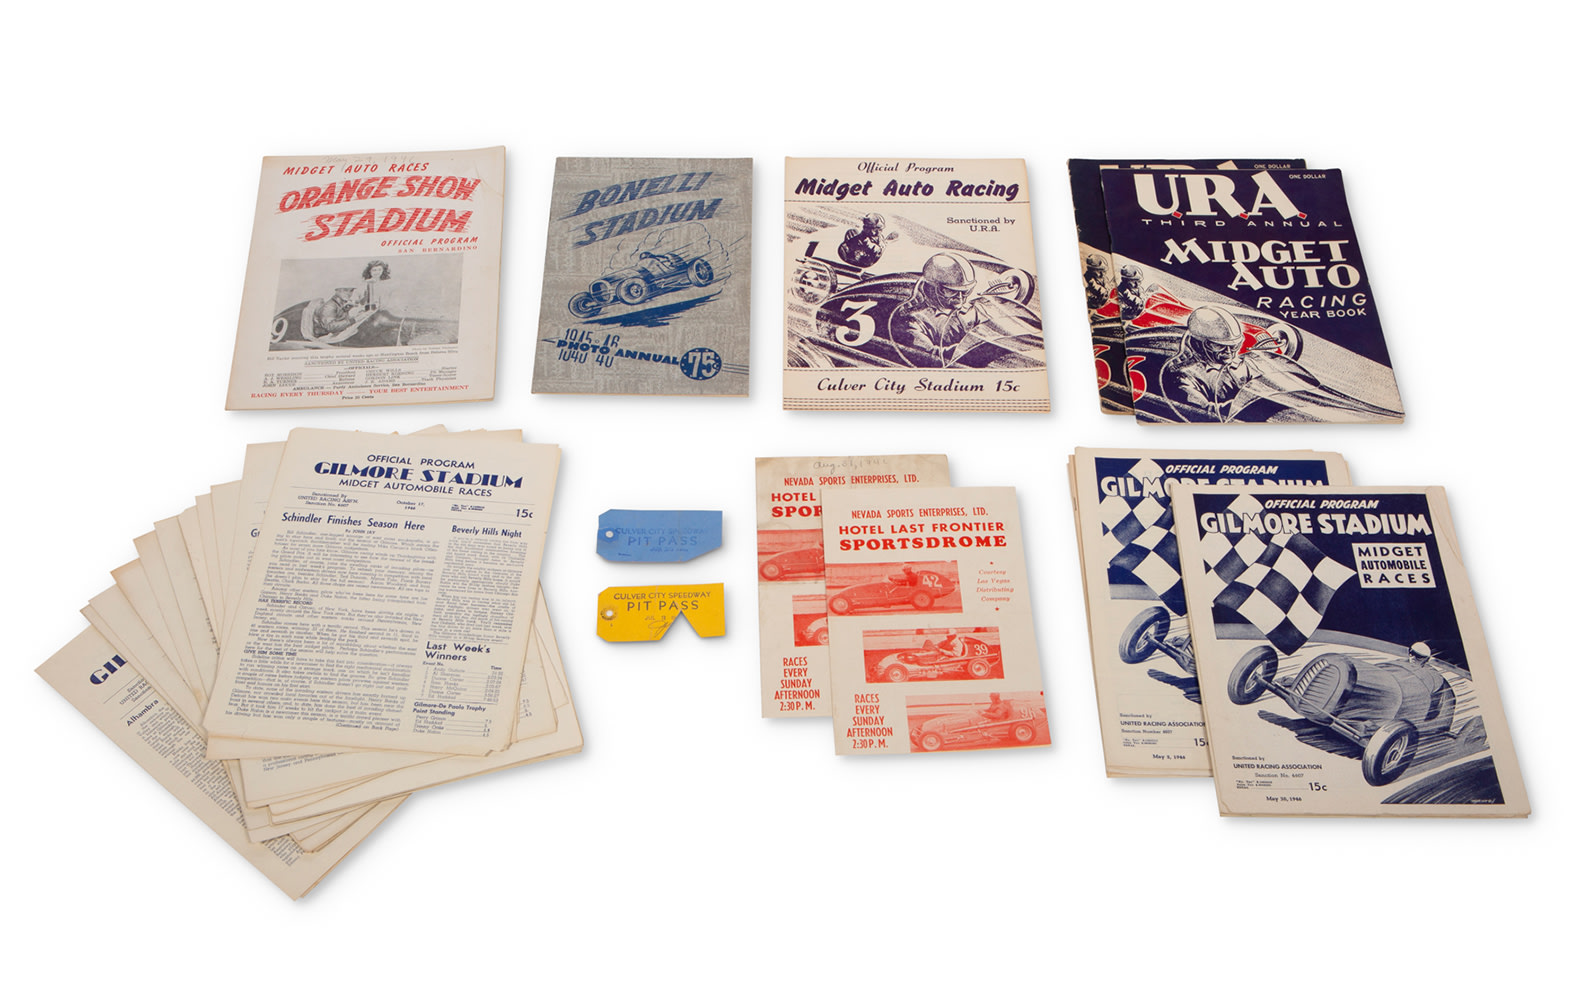 1946 Midget Racing Programs, Yearbooks, and Pit Passes